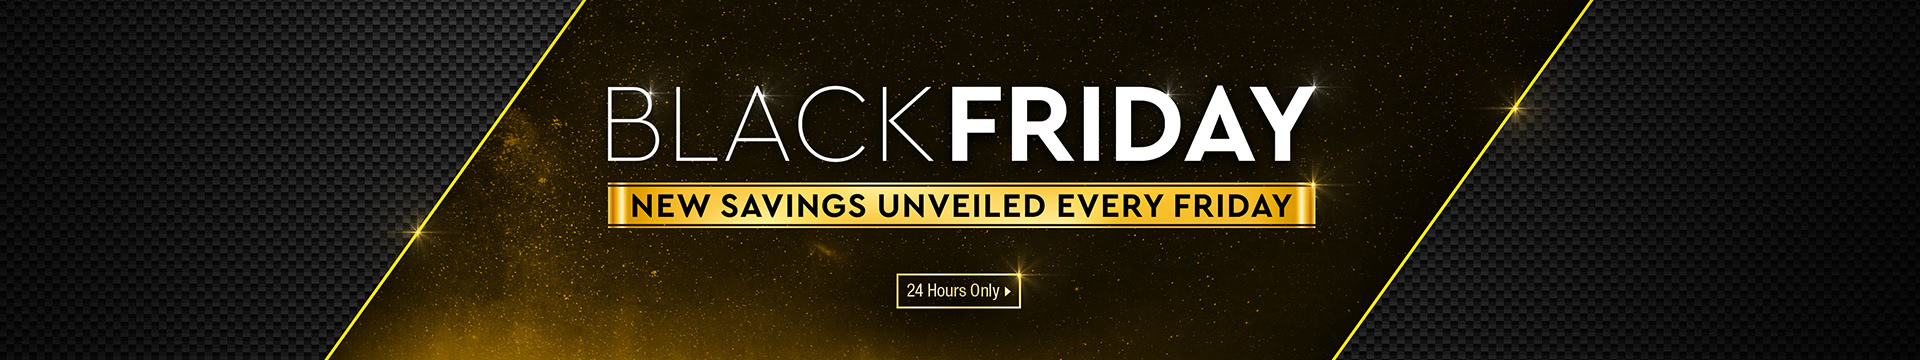 Black Friday - New Savings Unveiled Every Friday